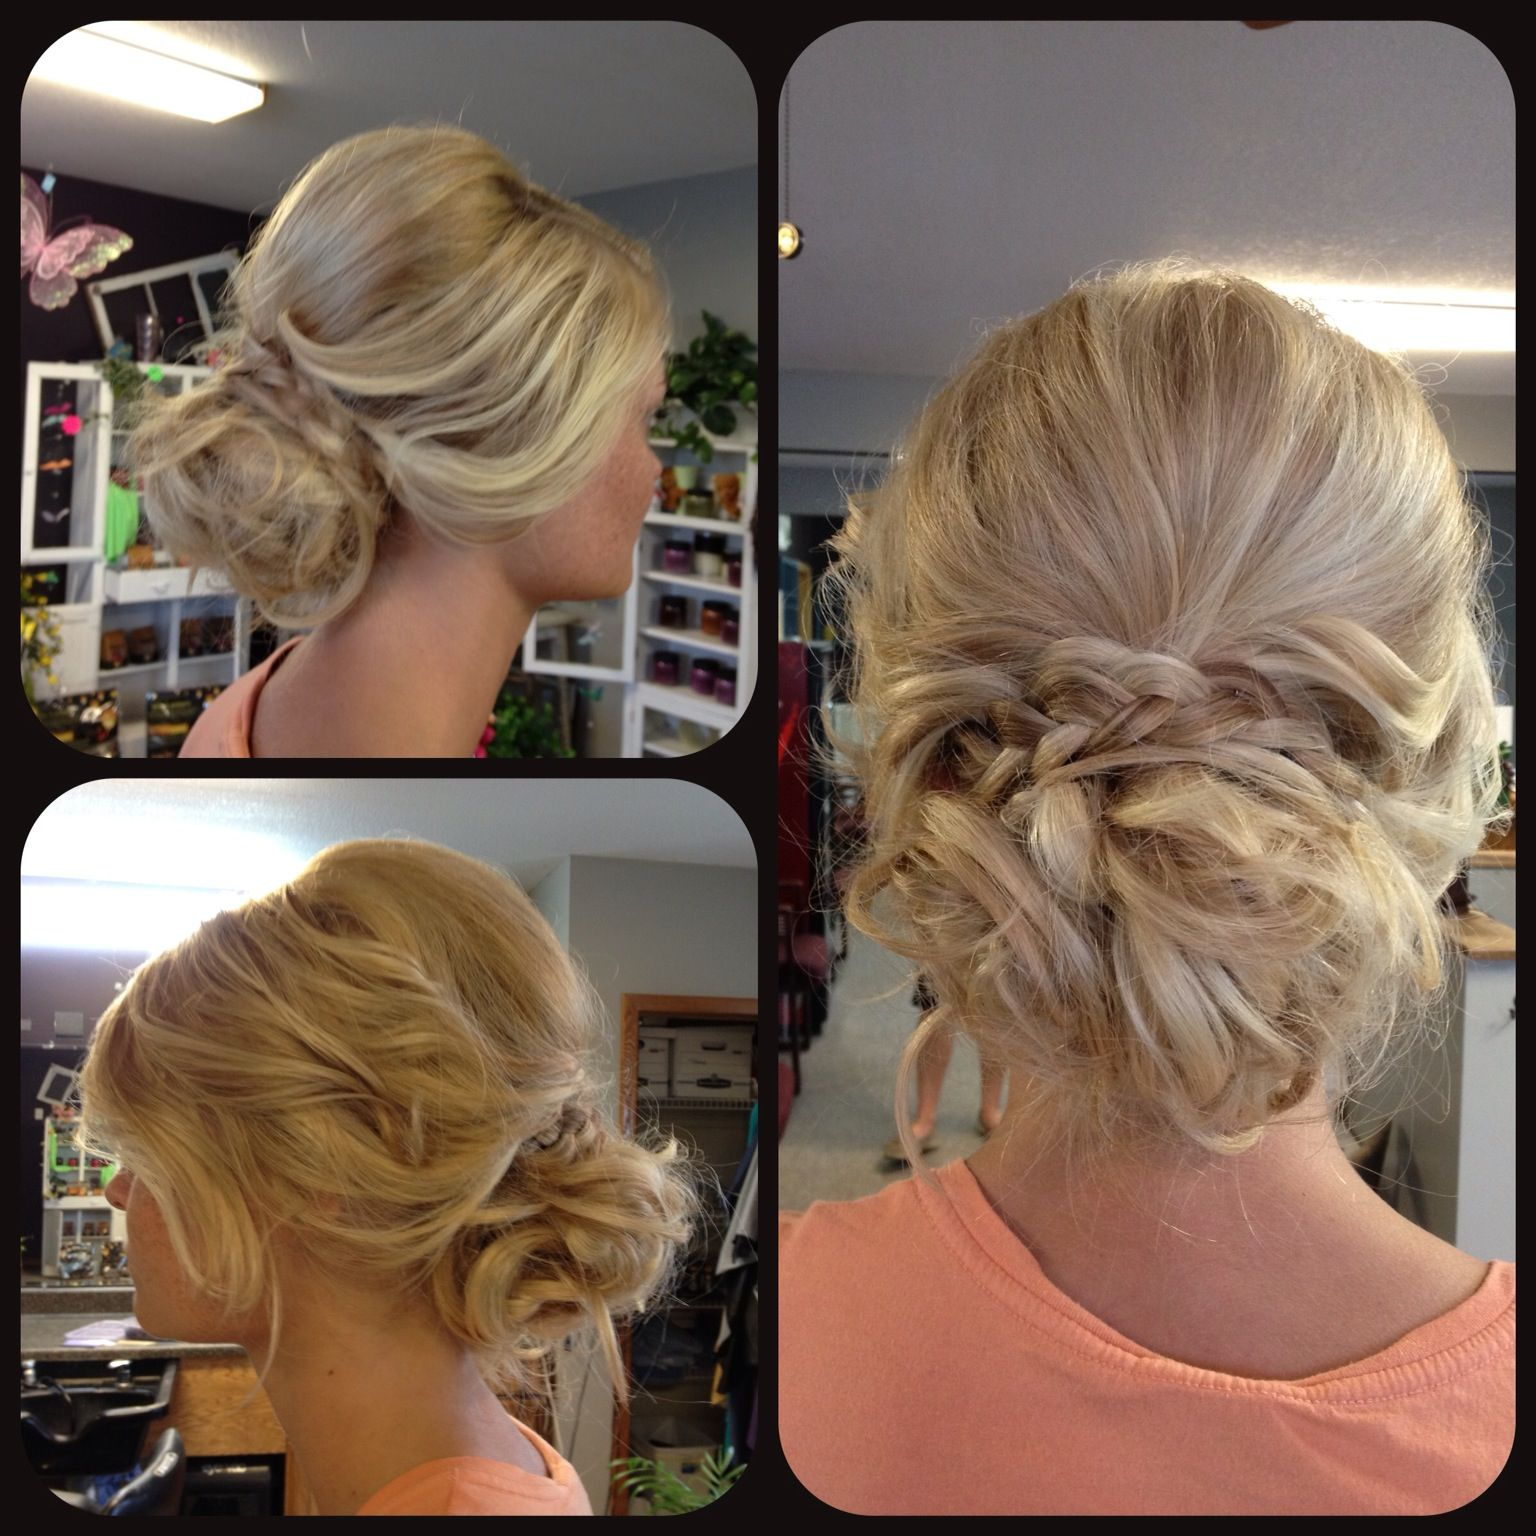 Prom updo upstyle loose messy curly curled braid blonde ...